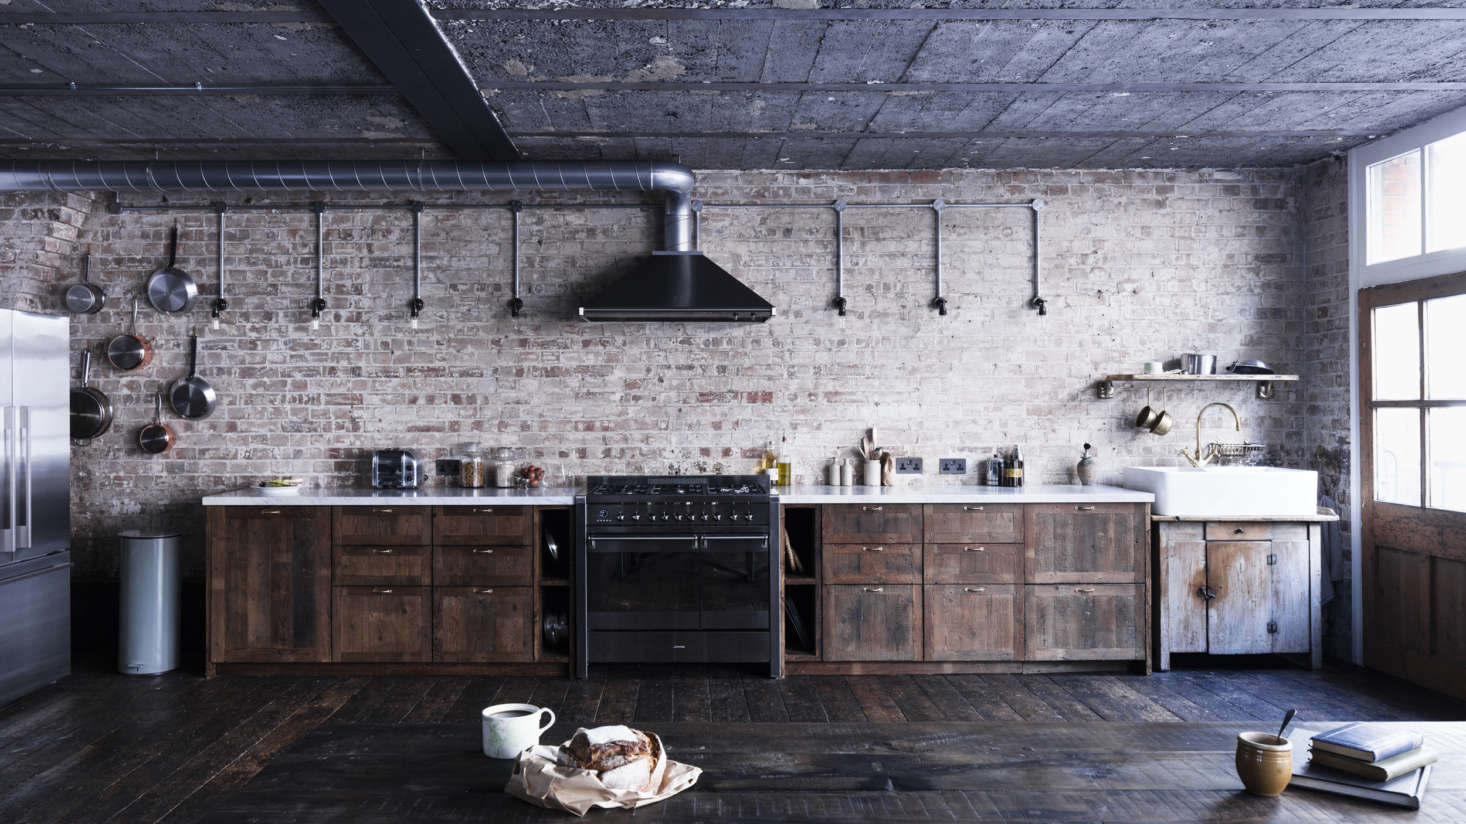 interesting brick loft interior design | Trending on Remodelista: 5 Design Ideas to Steal from ...